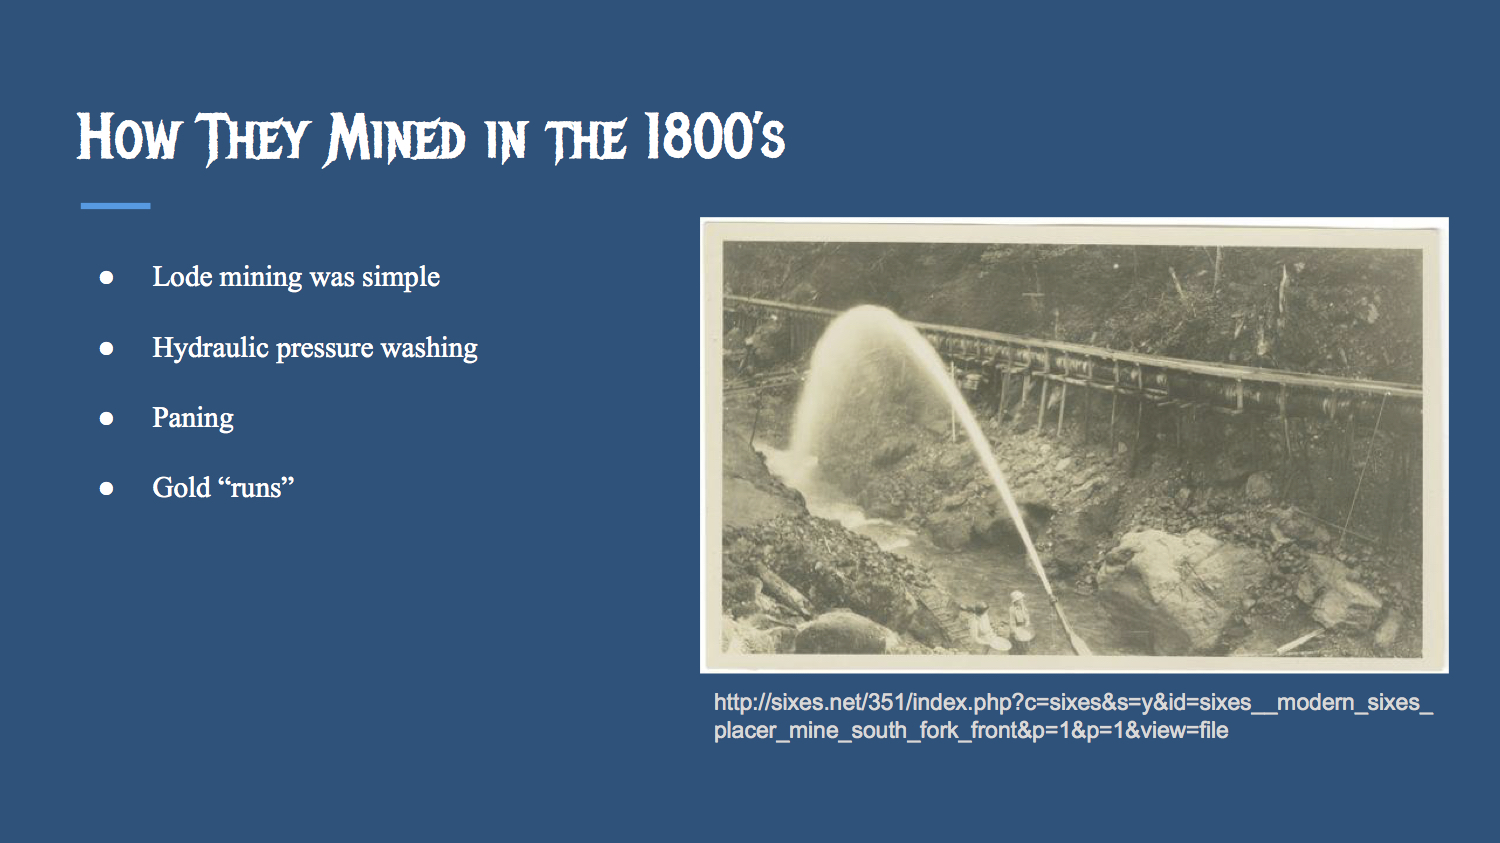 How They Mined In The 1800s